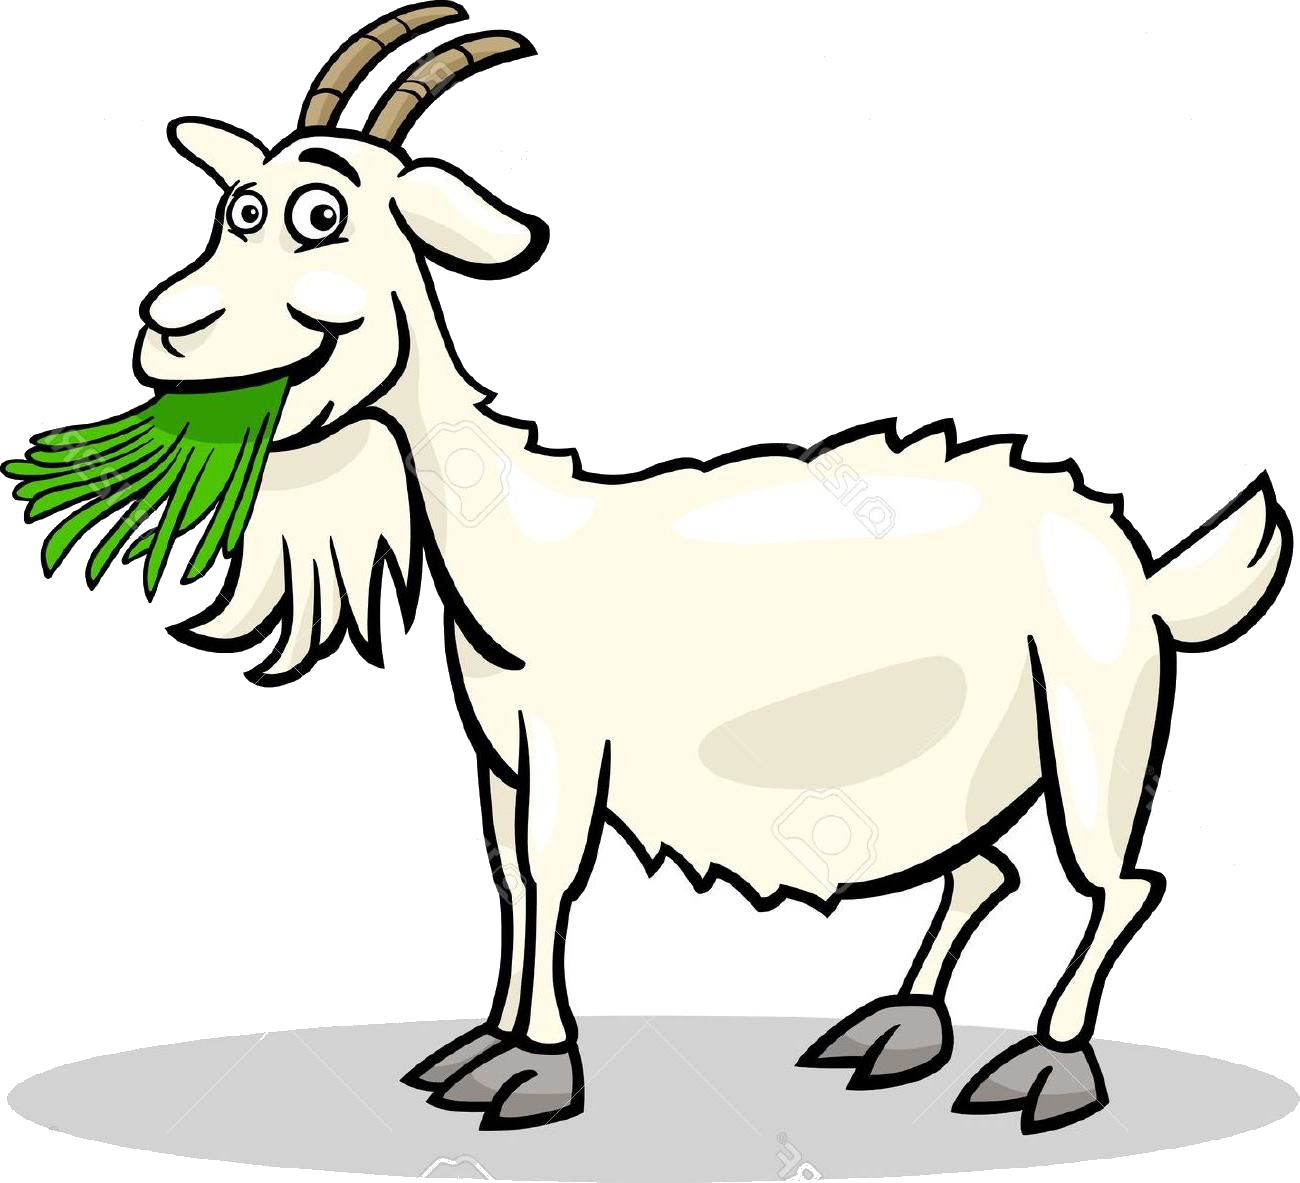 clip art royalty free download Goat clipart. Goats free best on